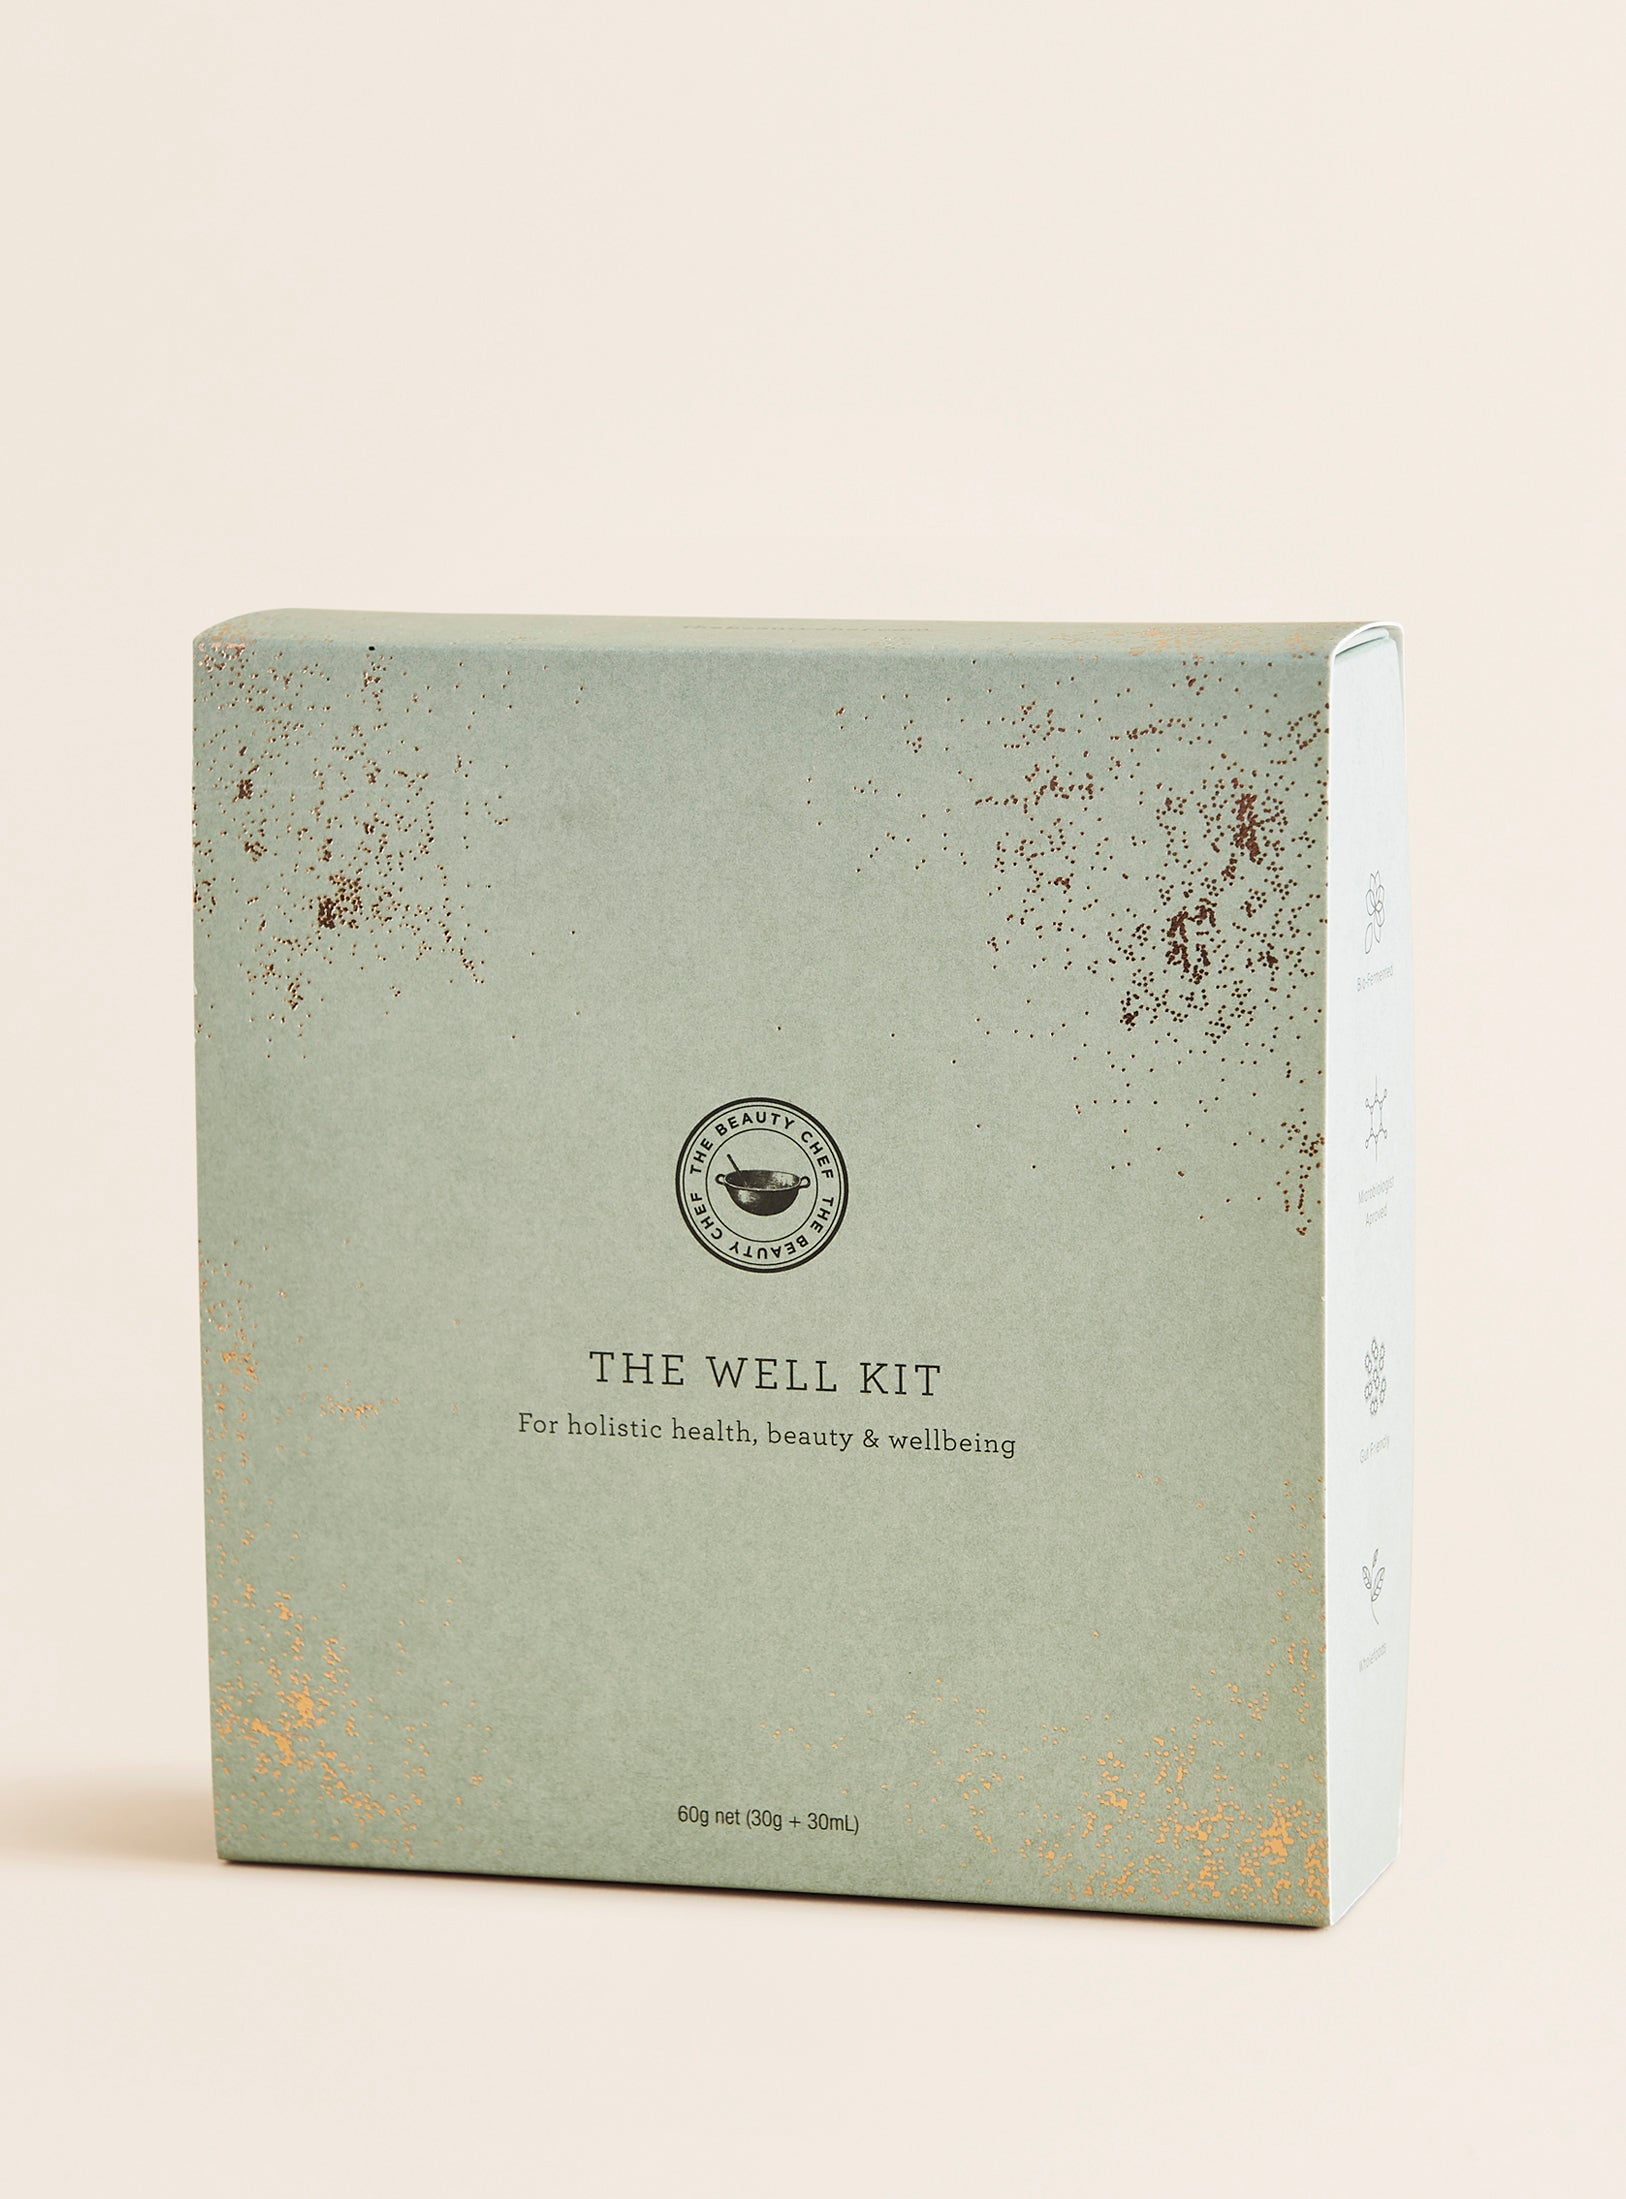 THE WELL KIT